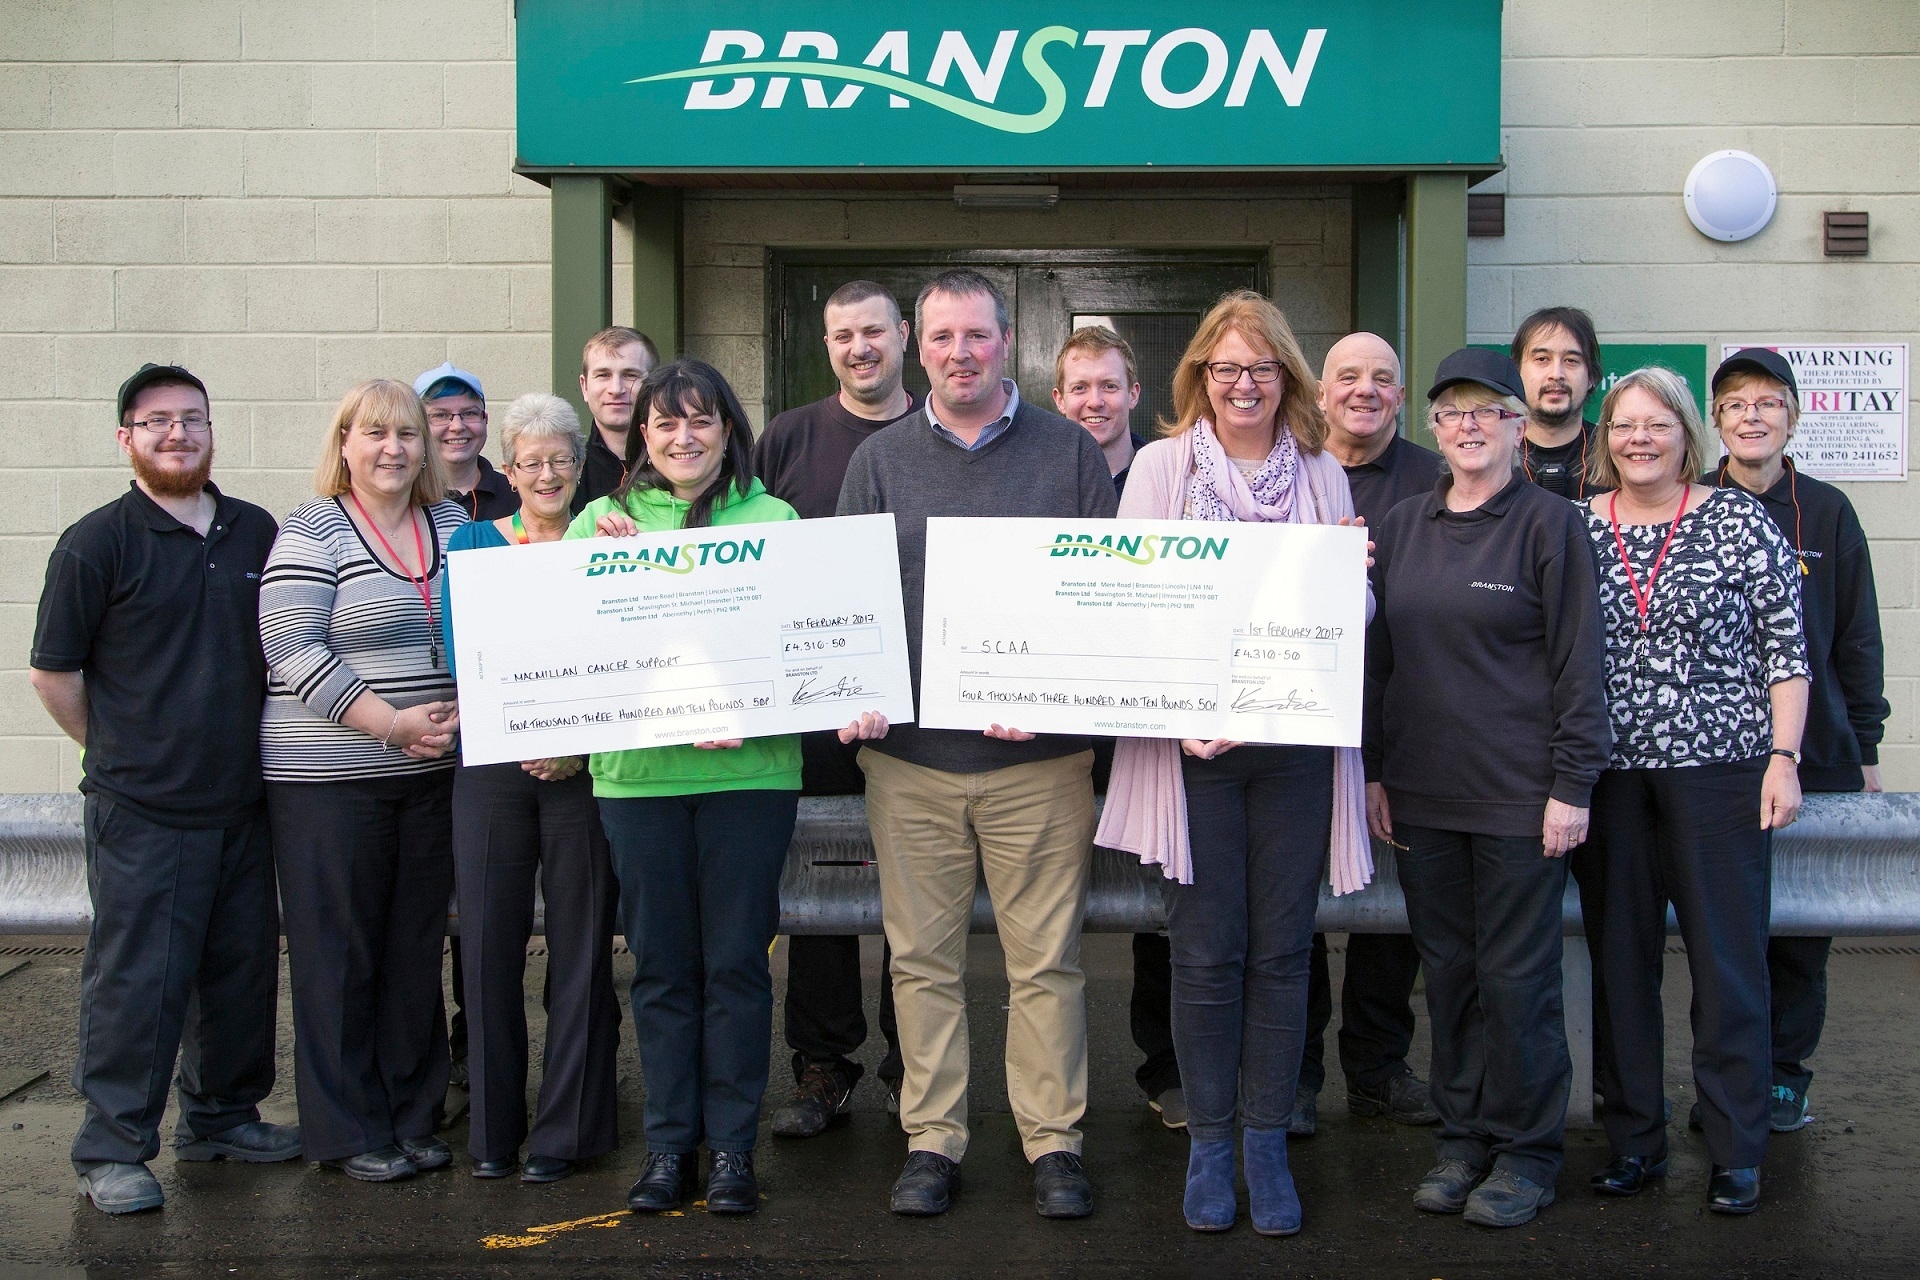 General Manager, Kevin Imrie presenting cheques to Isla Dewar from Macmillan Cancer Support and Fiona Dennis from SCAA.